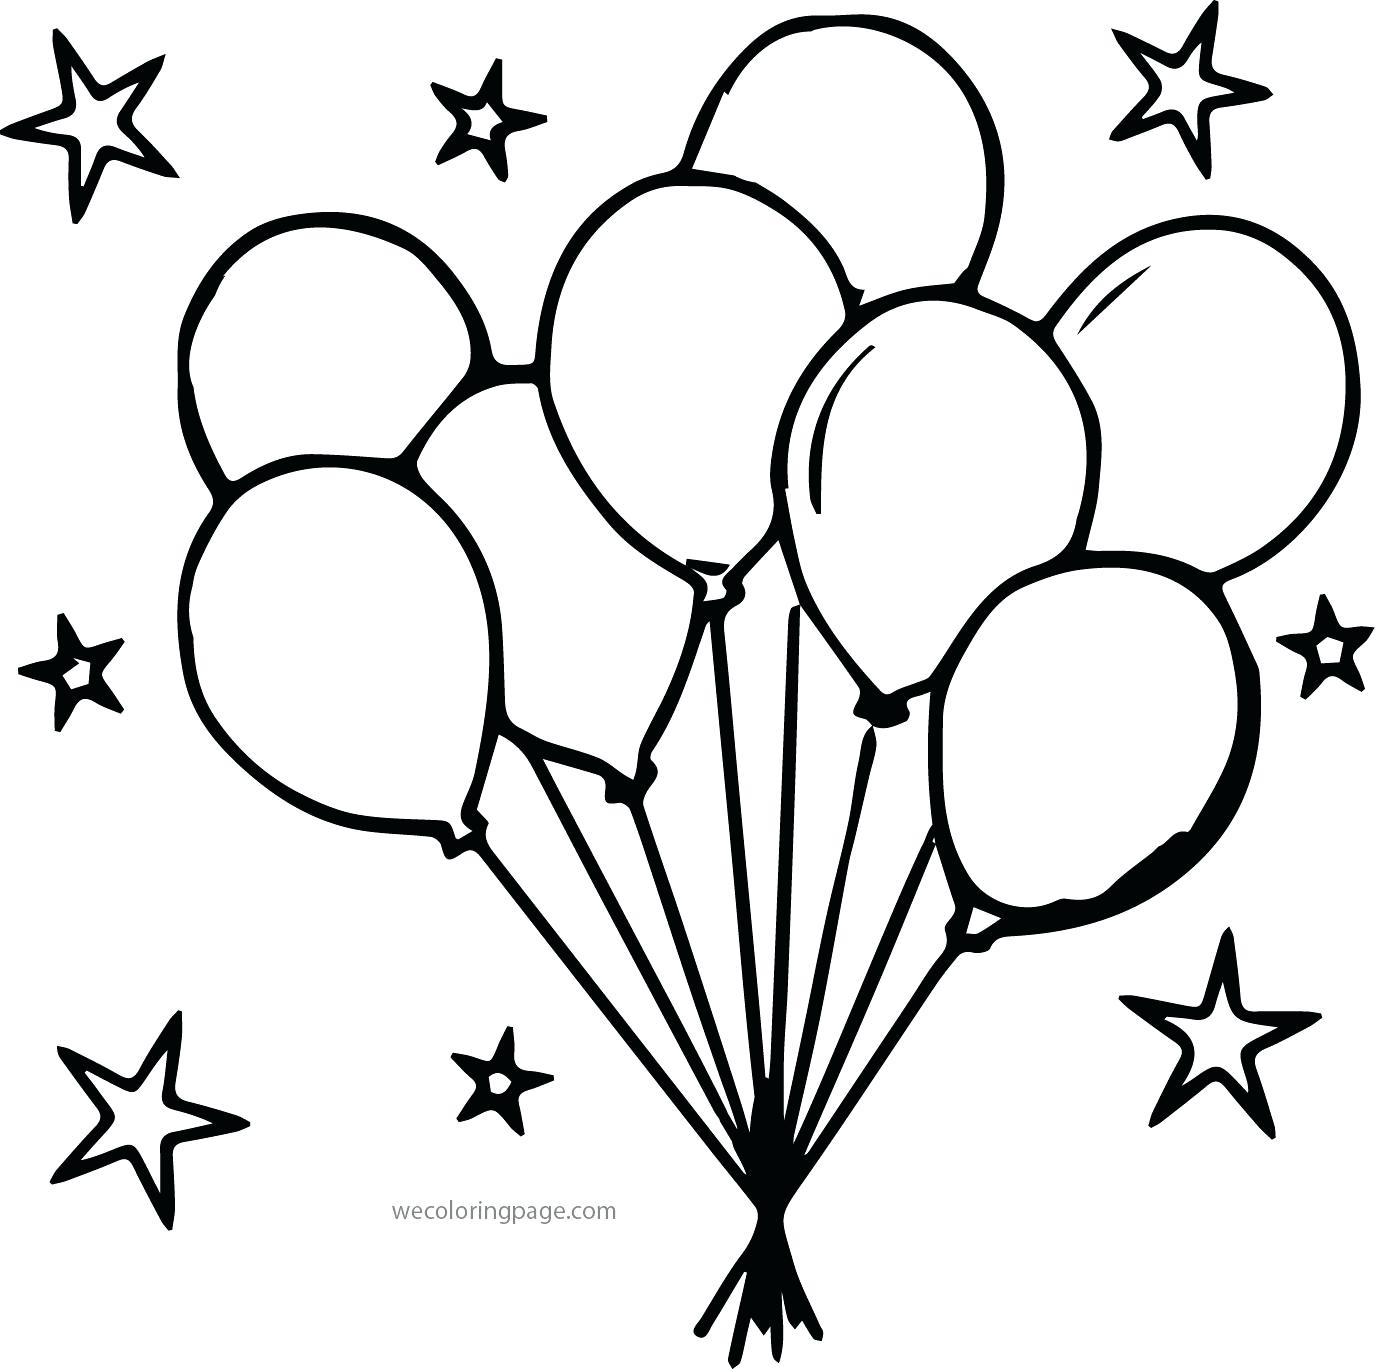 1375x1369 Instructive Coloring Pages Of Balloons Hot Air Balloon To Print